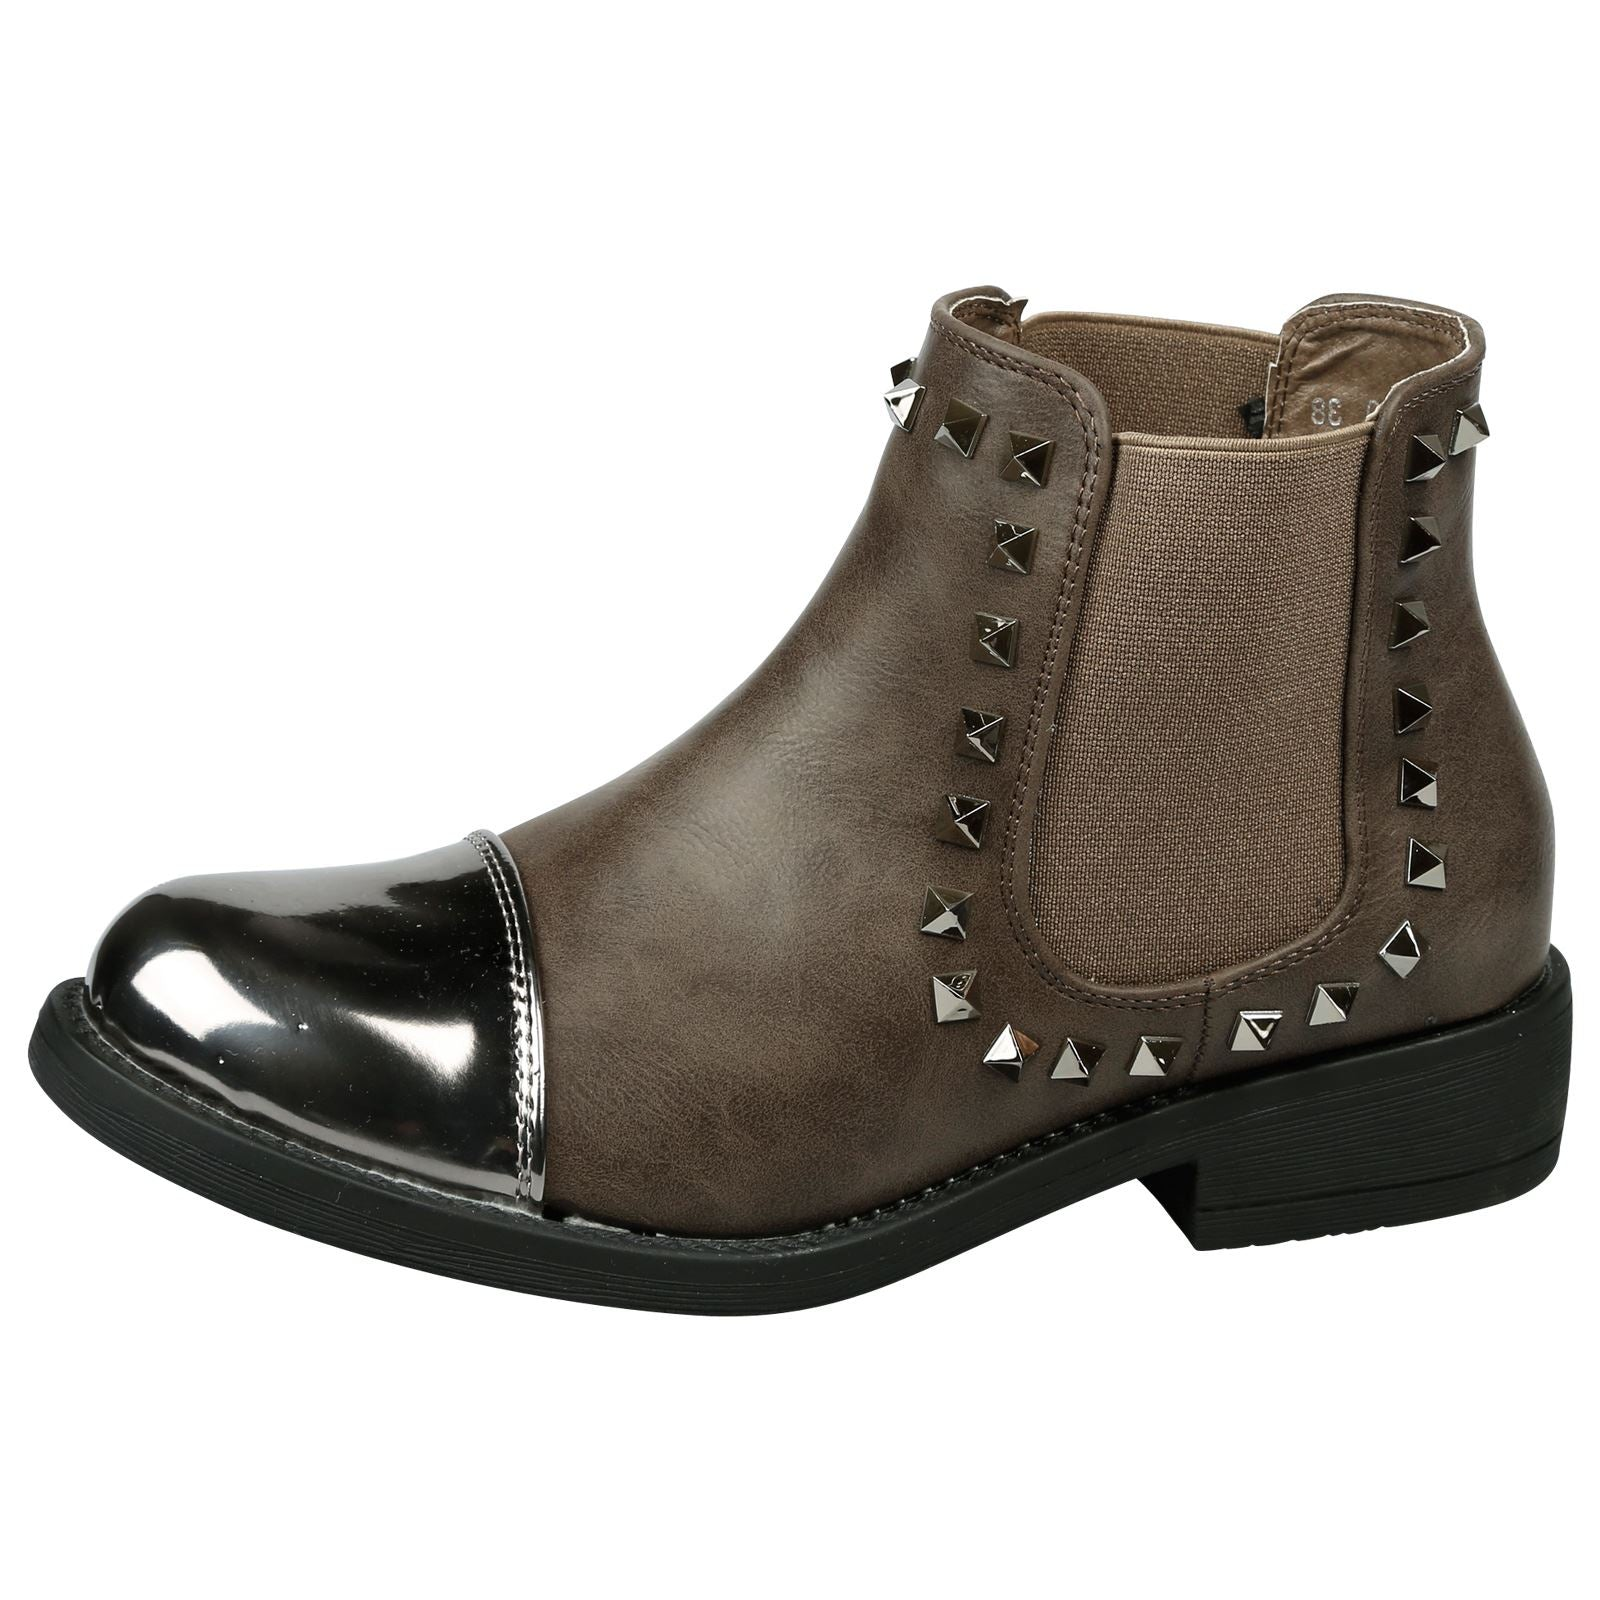 Ciara Studded Chelsea Boots in Khaki Brown Faux Leather